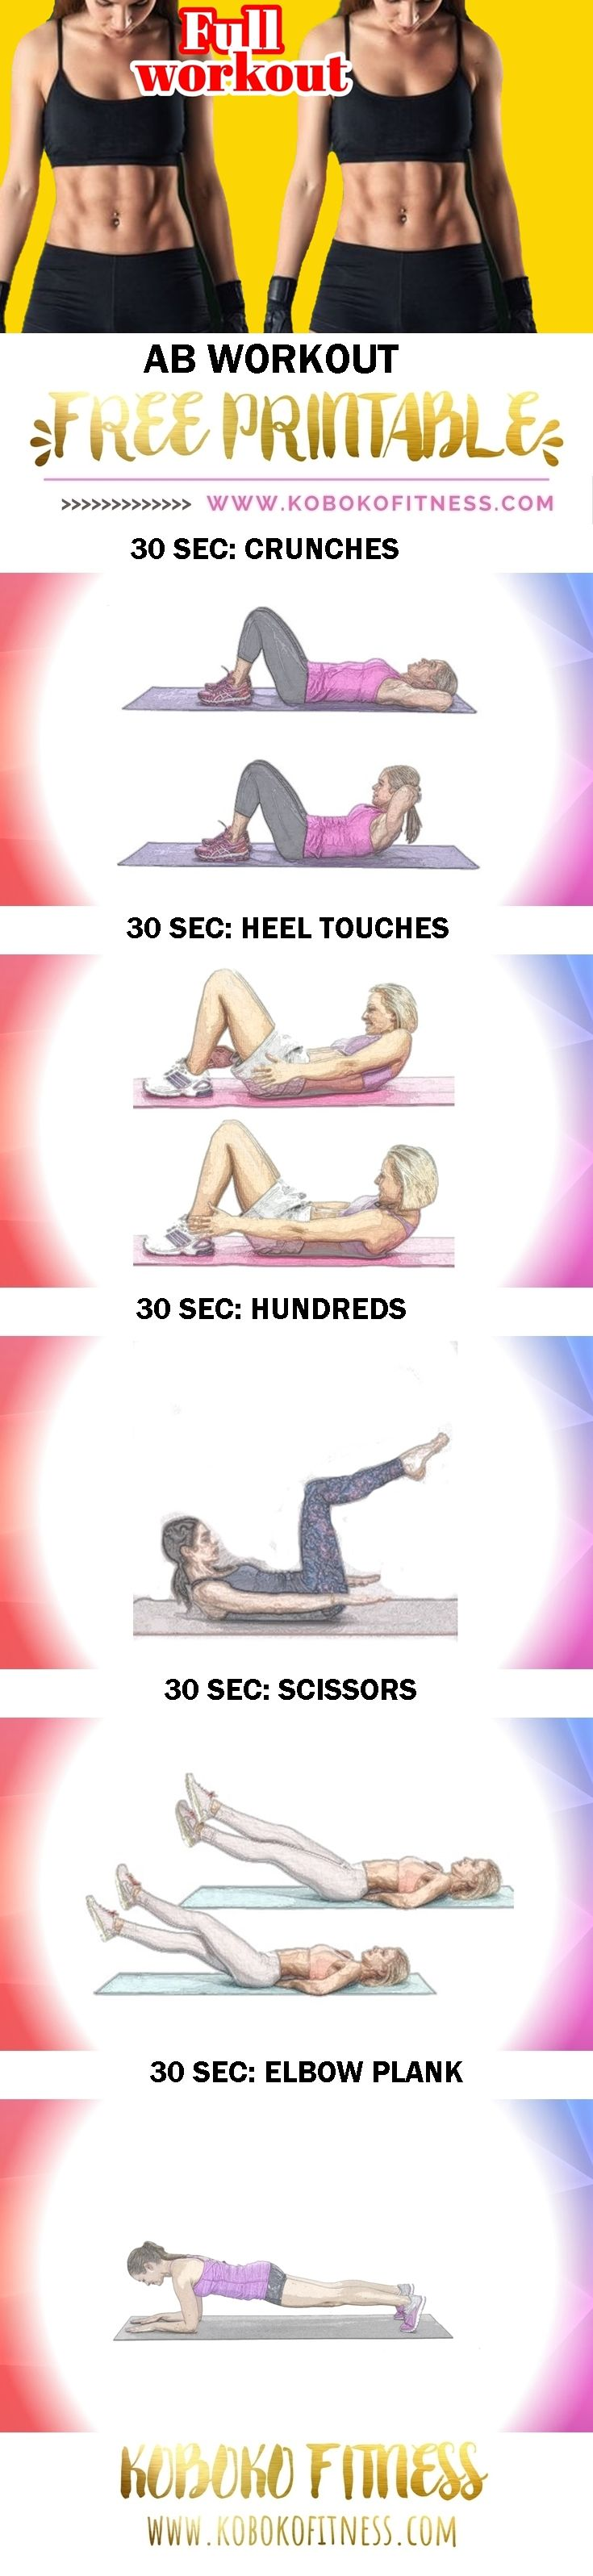 best home ab workout. Bodyweight exercises only. You will burn fat off your abs and also tone your abs for the perfect balance to reveal your true potential!